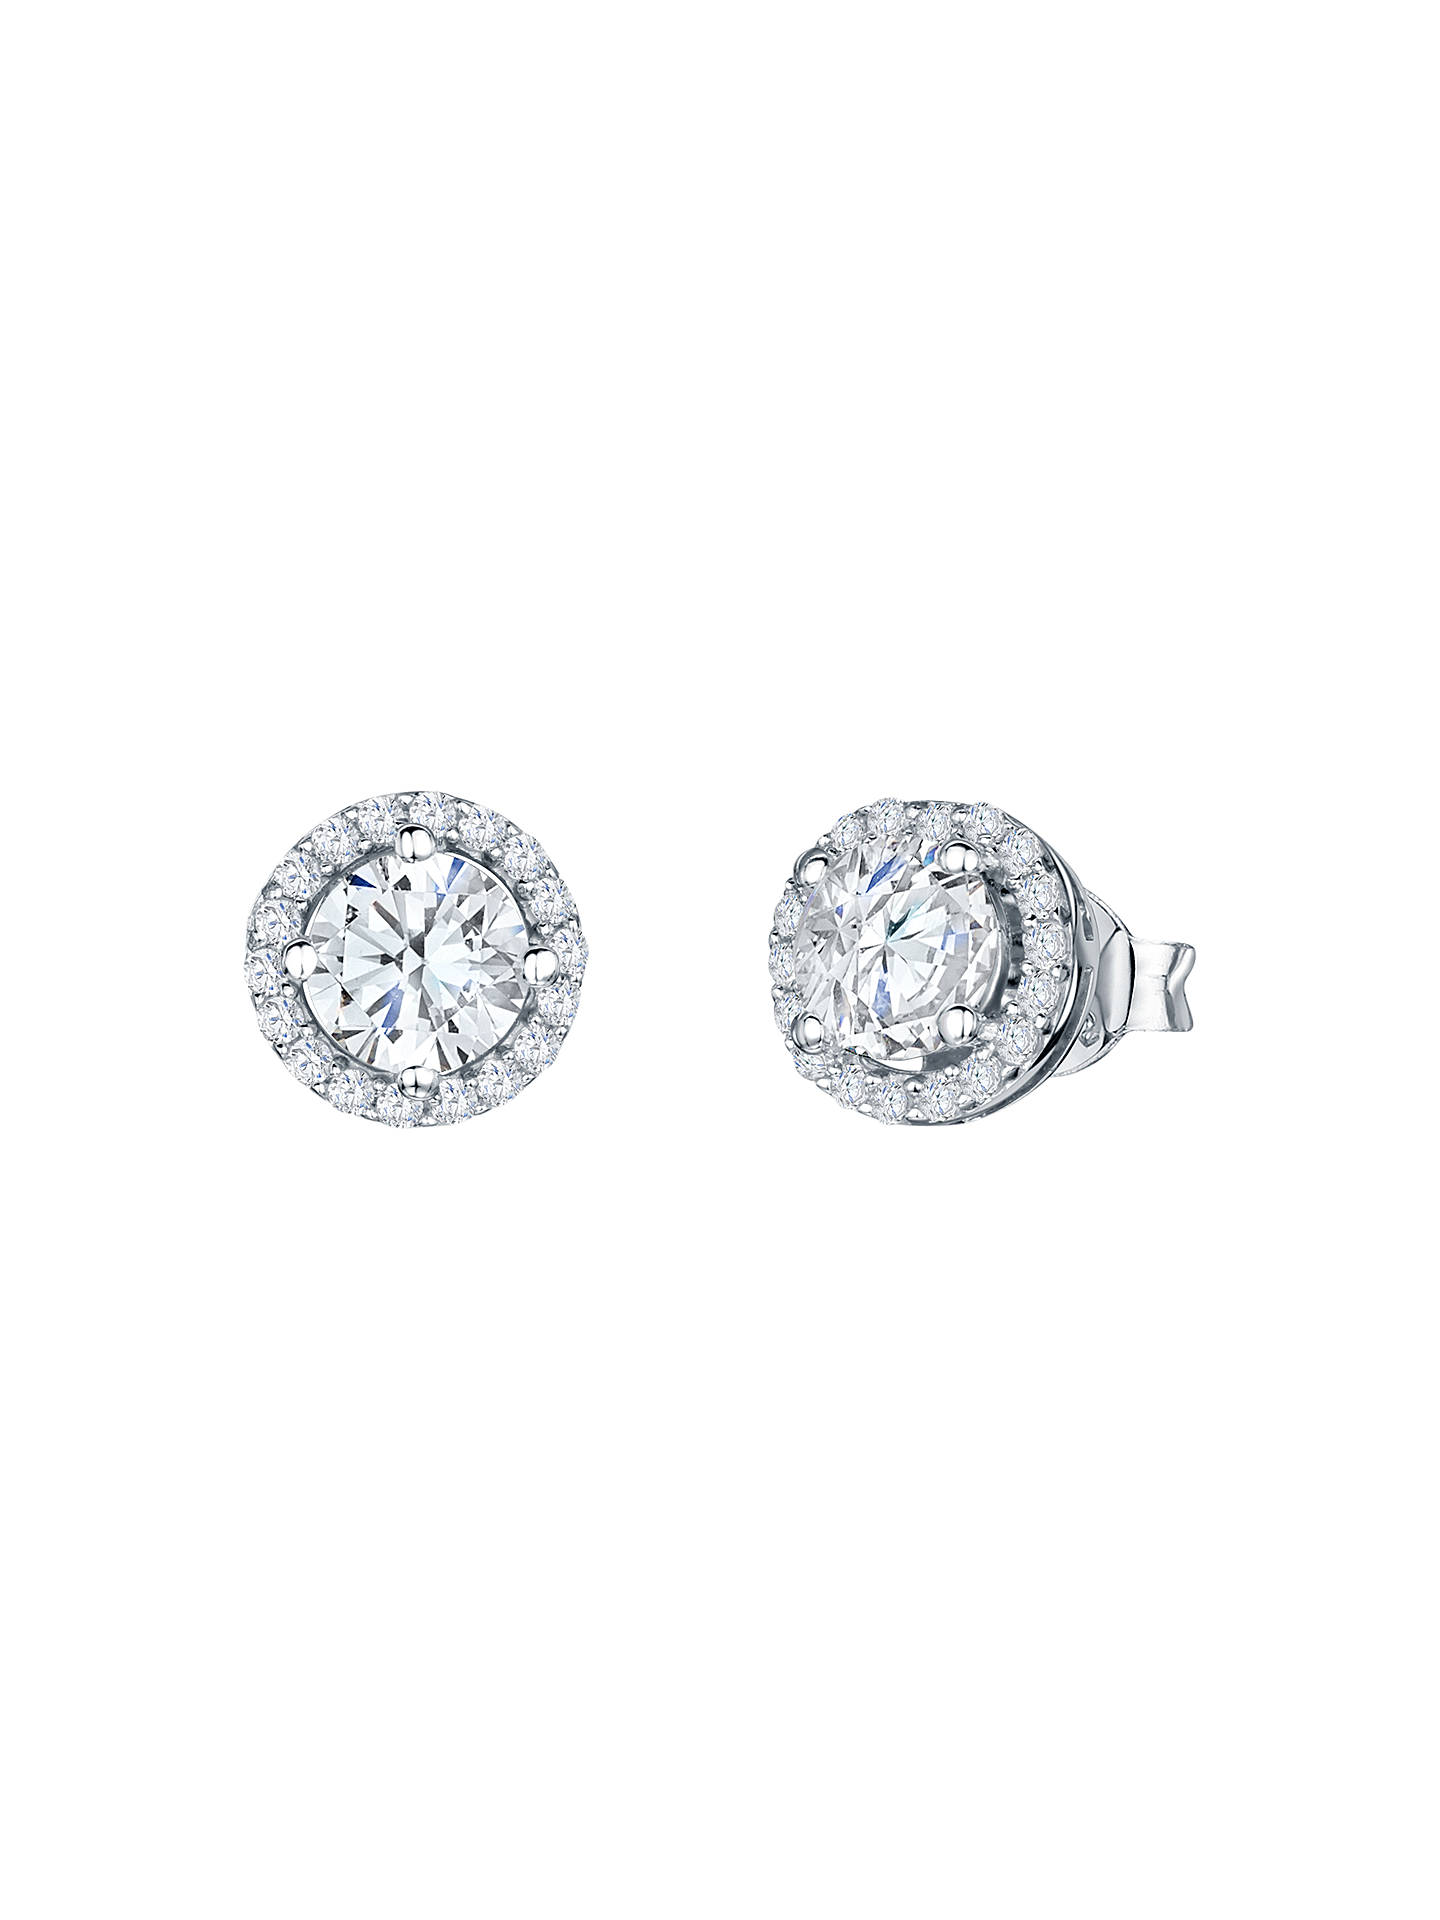 7207c4a8d Buy Jools by Jenny Brown Round Pavé Surround Stud Earrings Online at  johnlewis.com